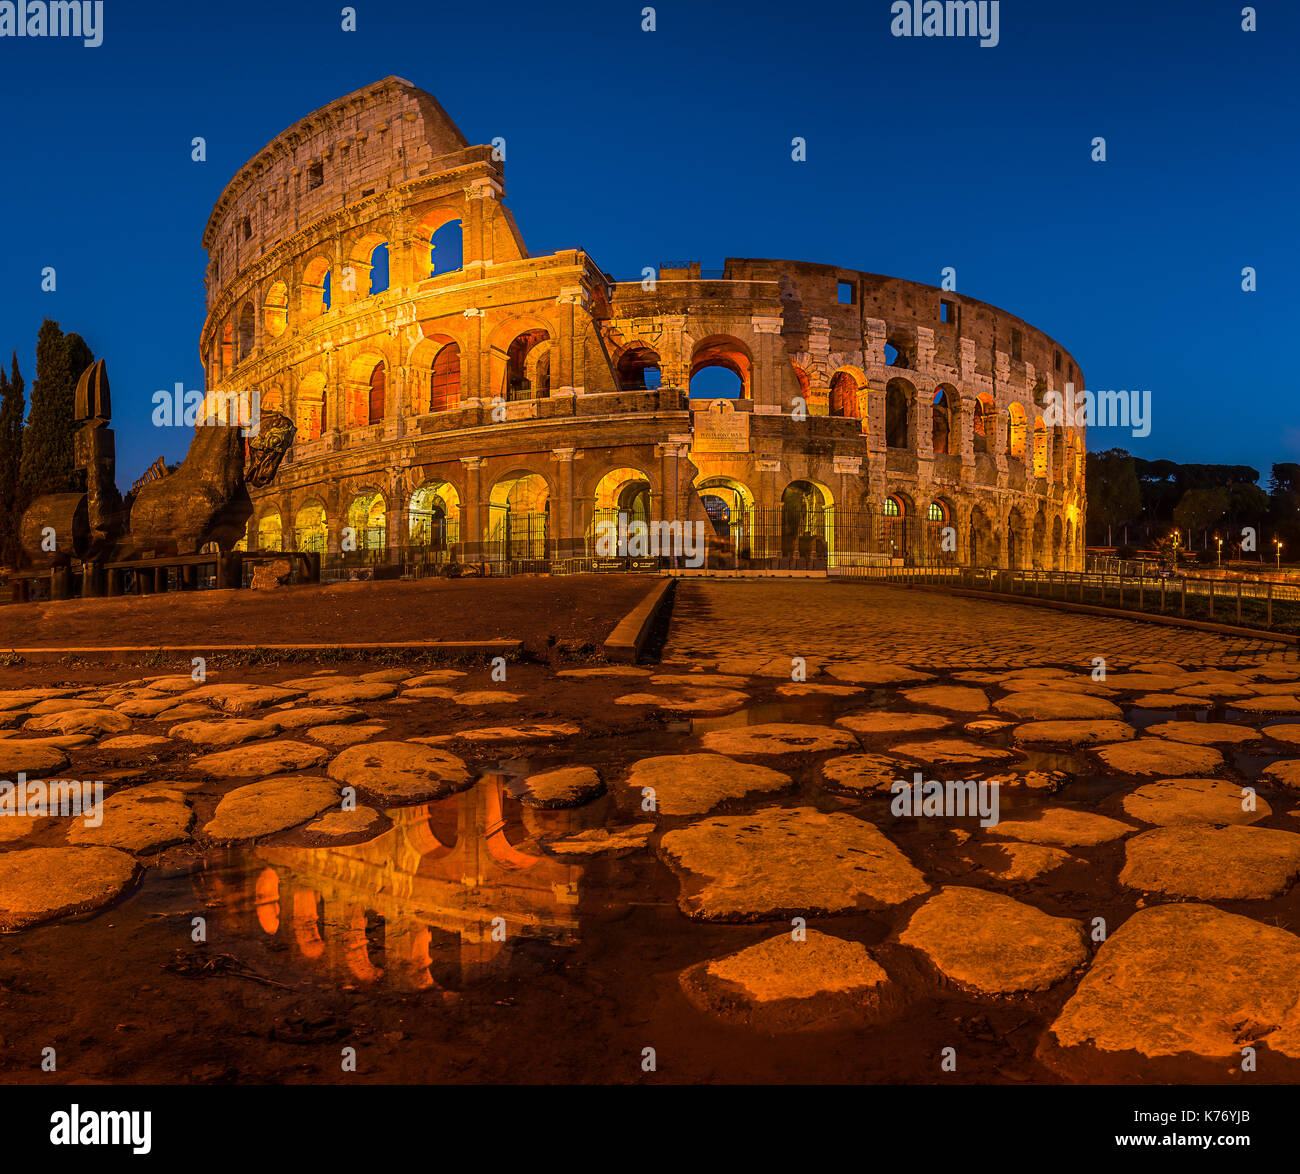 The perfect shot over the Colosseum. The foreground is reflecting the famous building making the shot epic. This photo is Rome in one image. - Stock Image